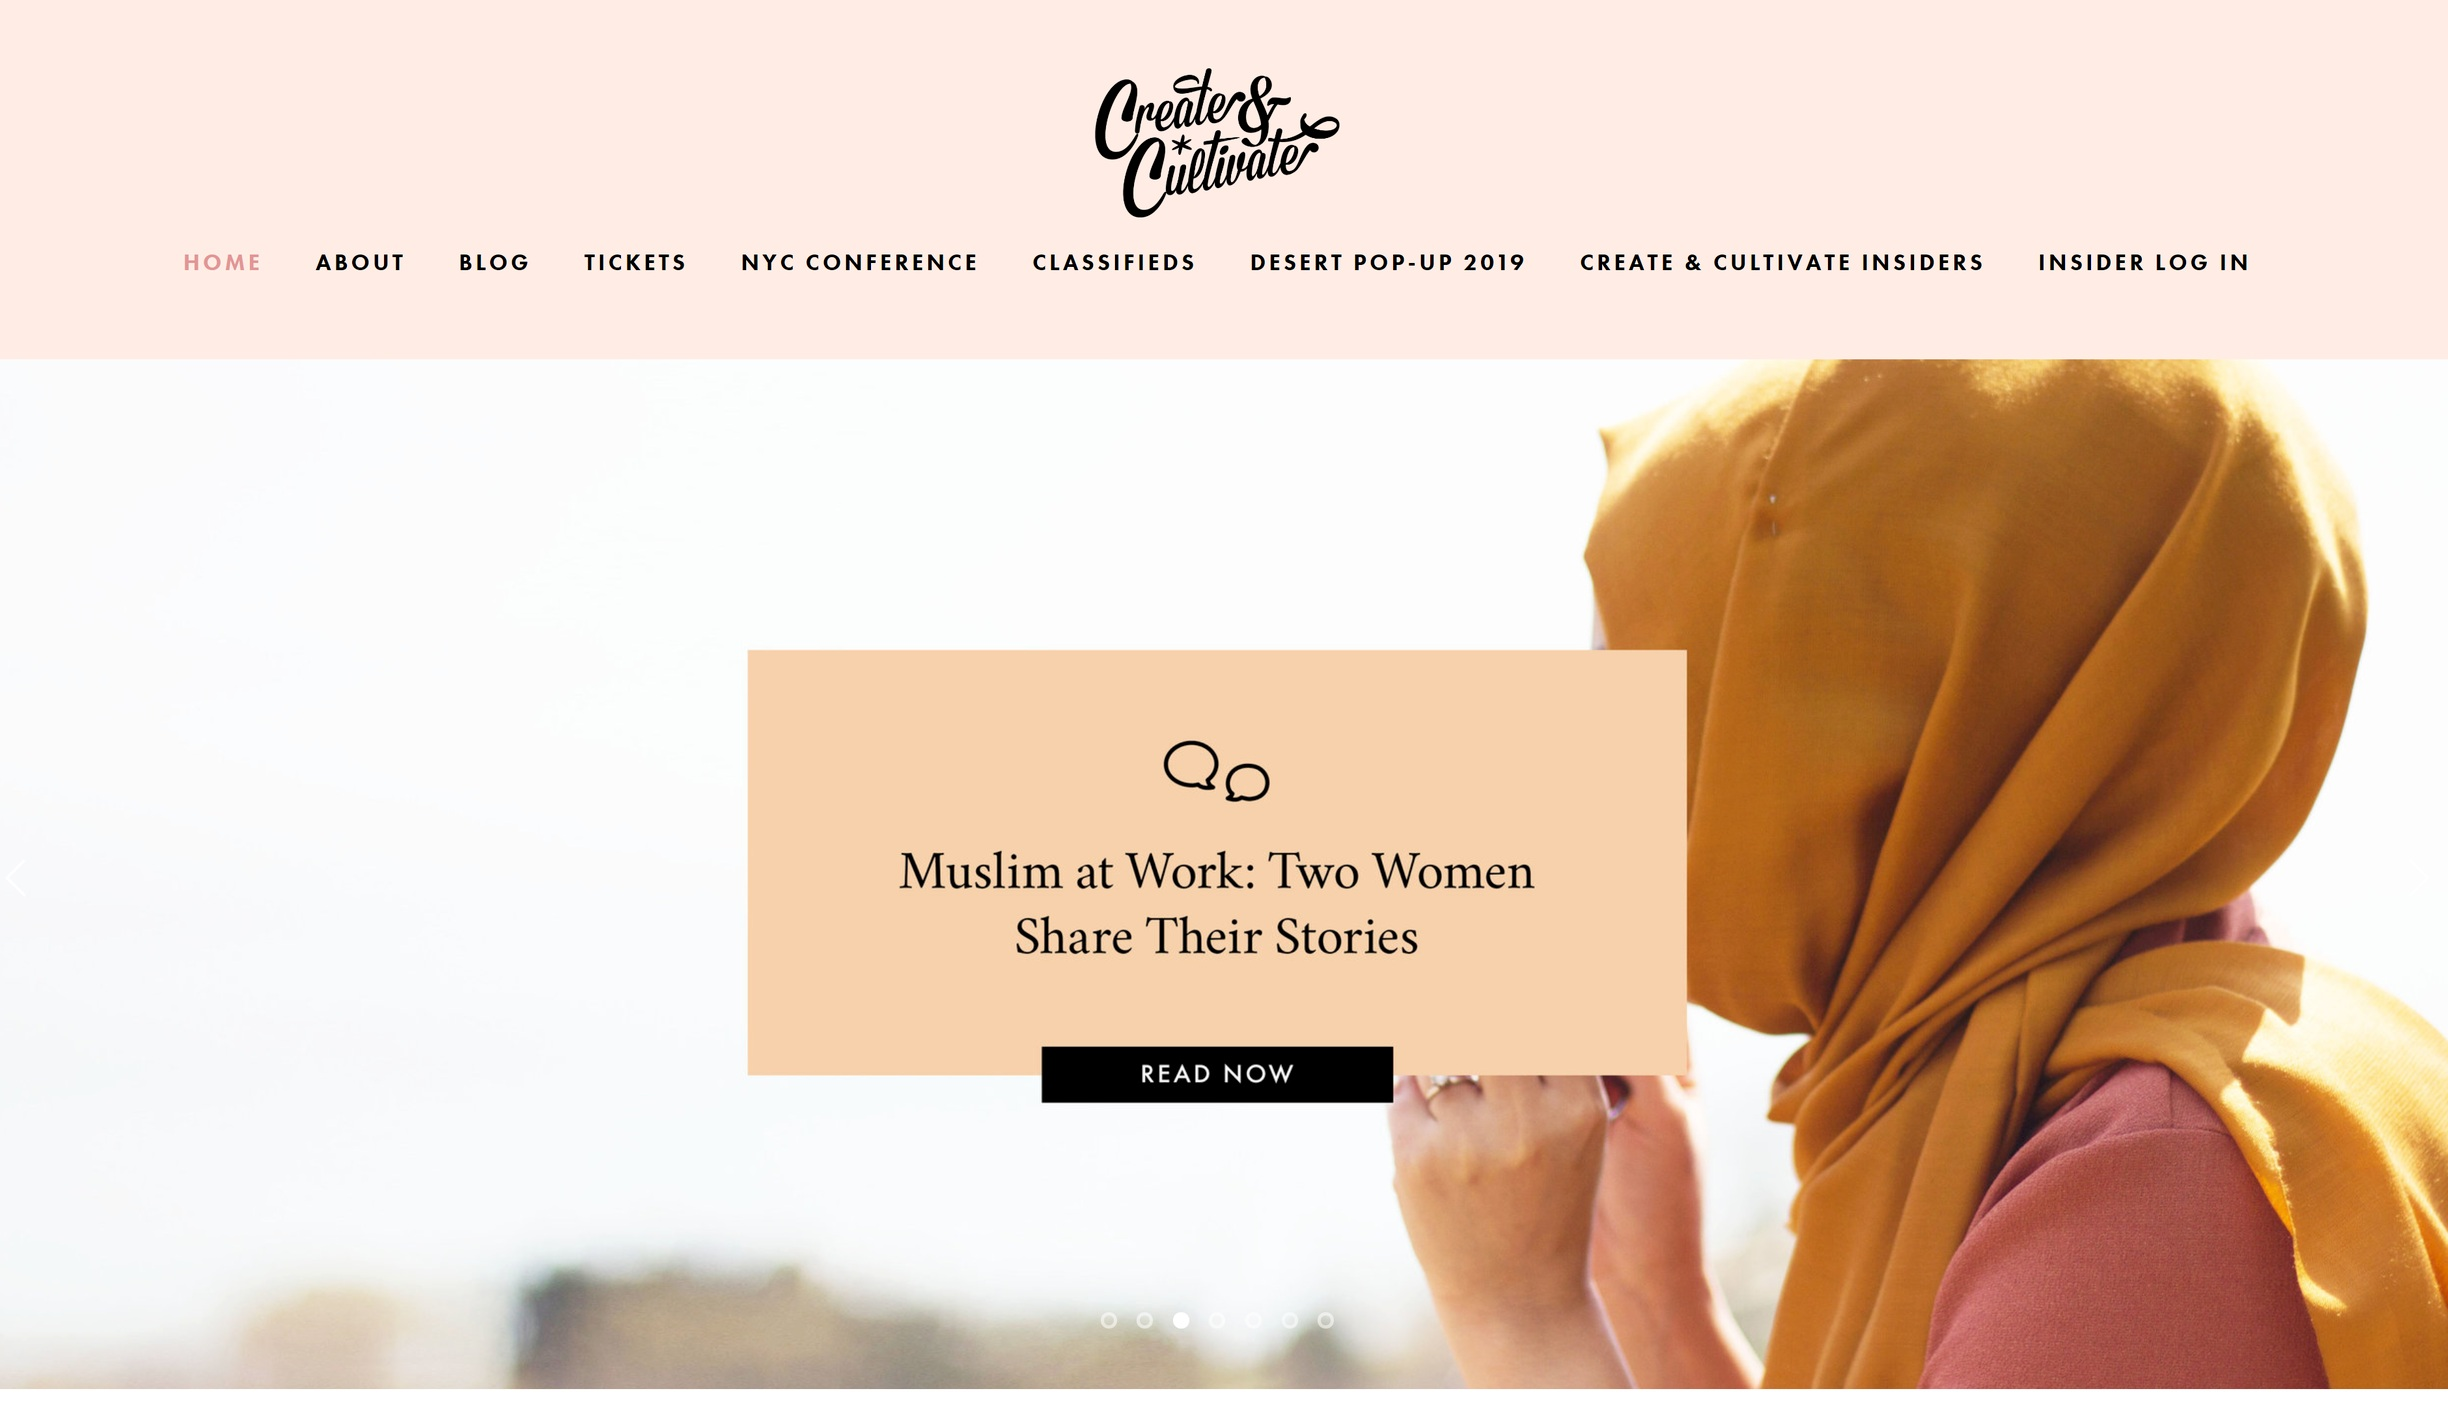 Create and Cultivate - Best website for Women Entrepreneurs